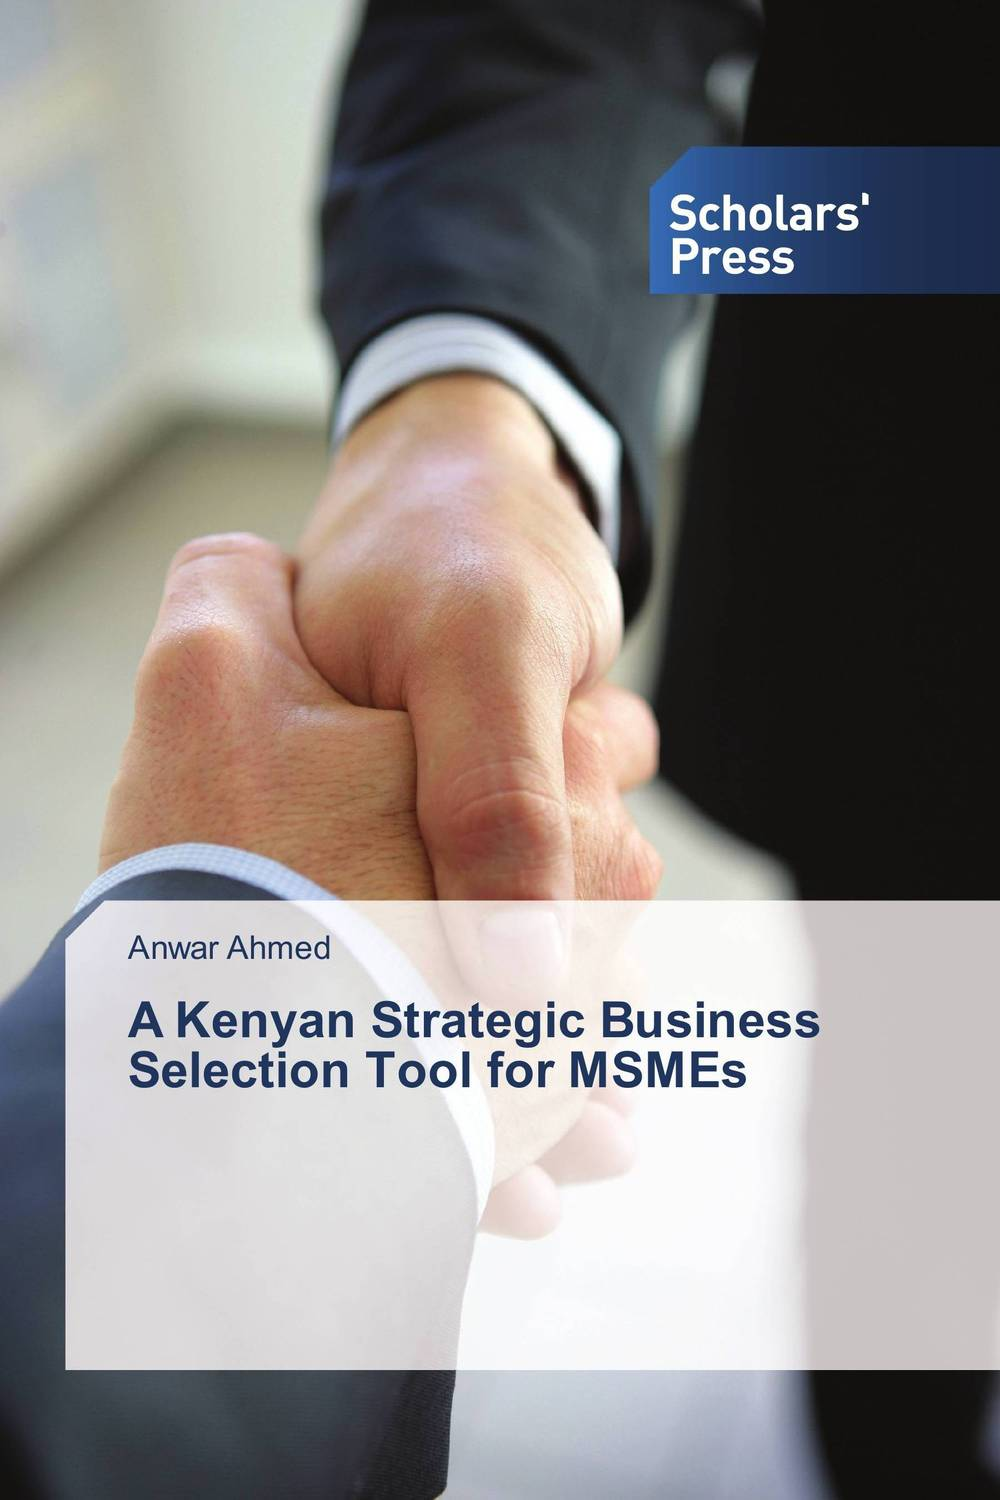 A Kenyan Strategic Business Selection Tool for MSMEs